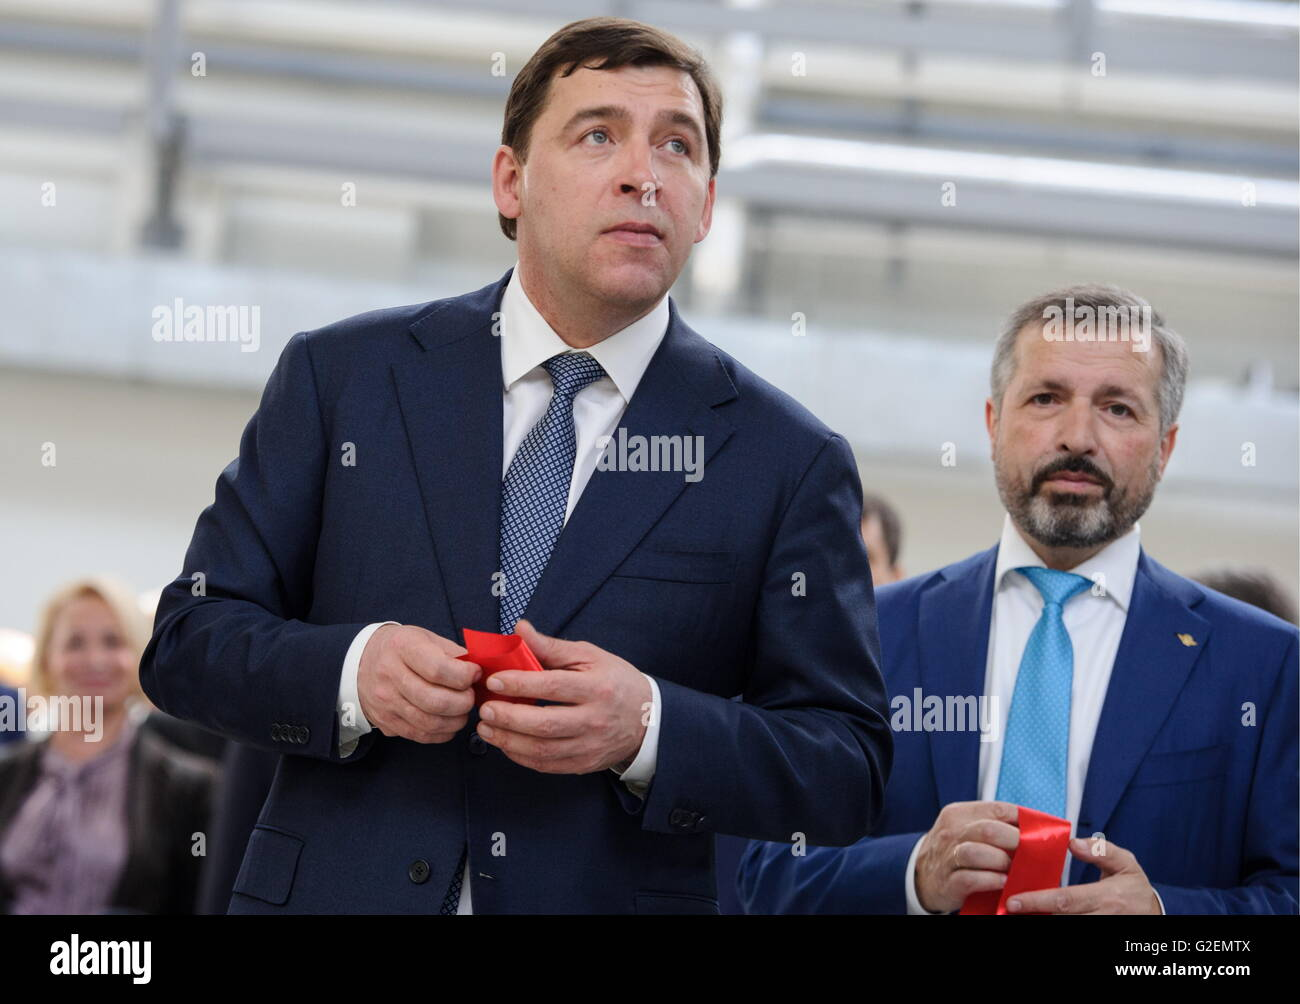 YEKATERINBURG, RUSSIA - MAY 20, 2016: Evgeny Kuivashev (left), Governor of the Sverdlovsk region, and Mikhail Lifshitz, - Stock Image